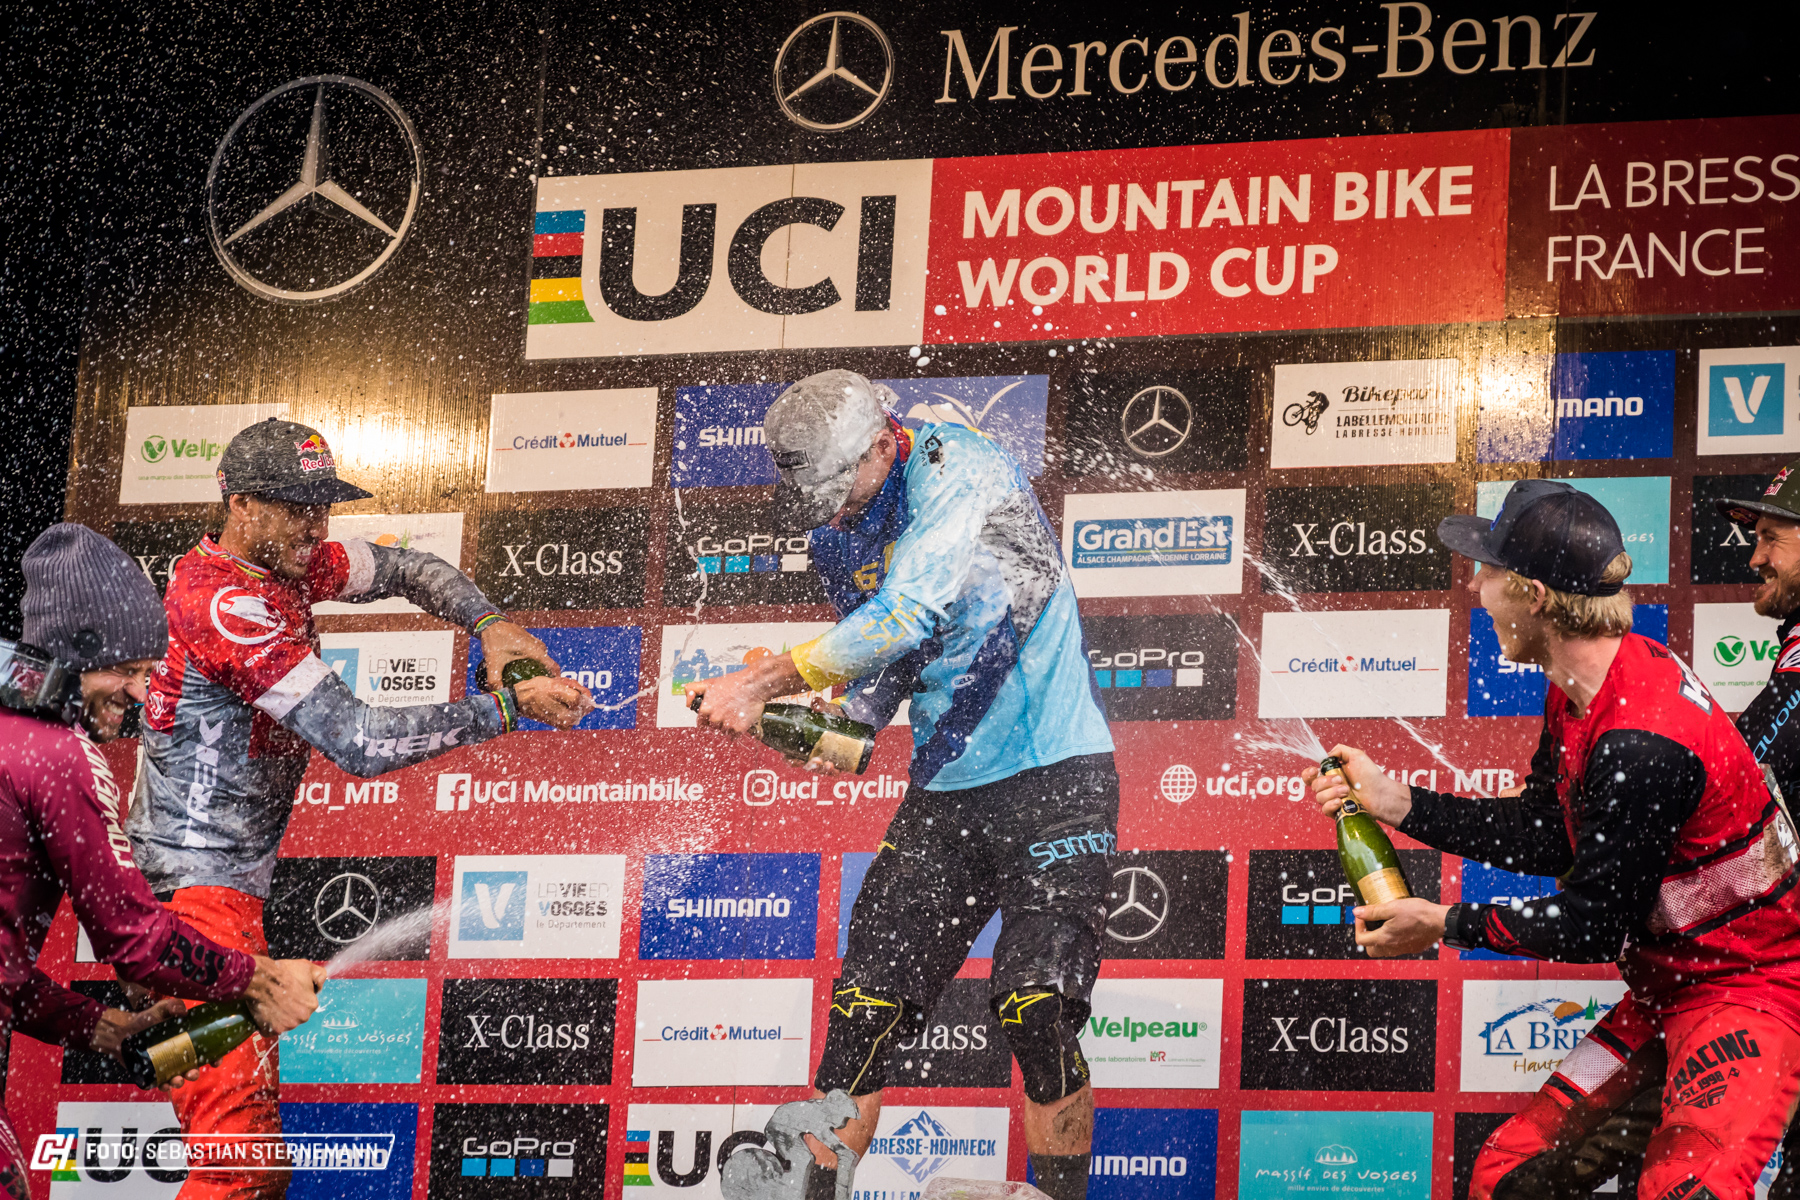 UCI Downhill World Cup La Bresse 2018